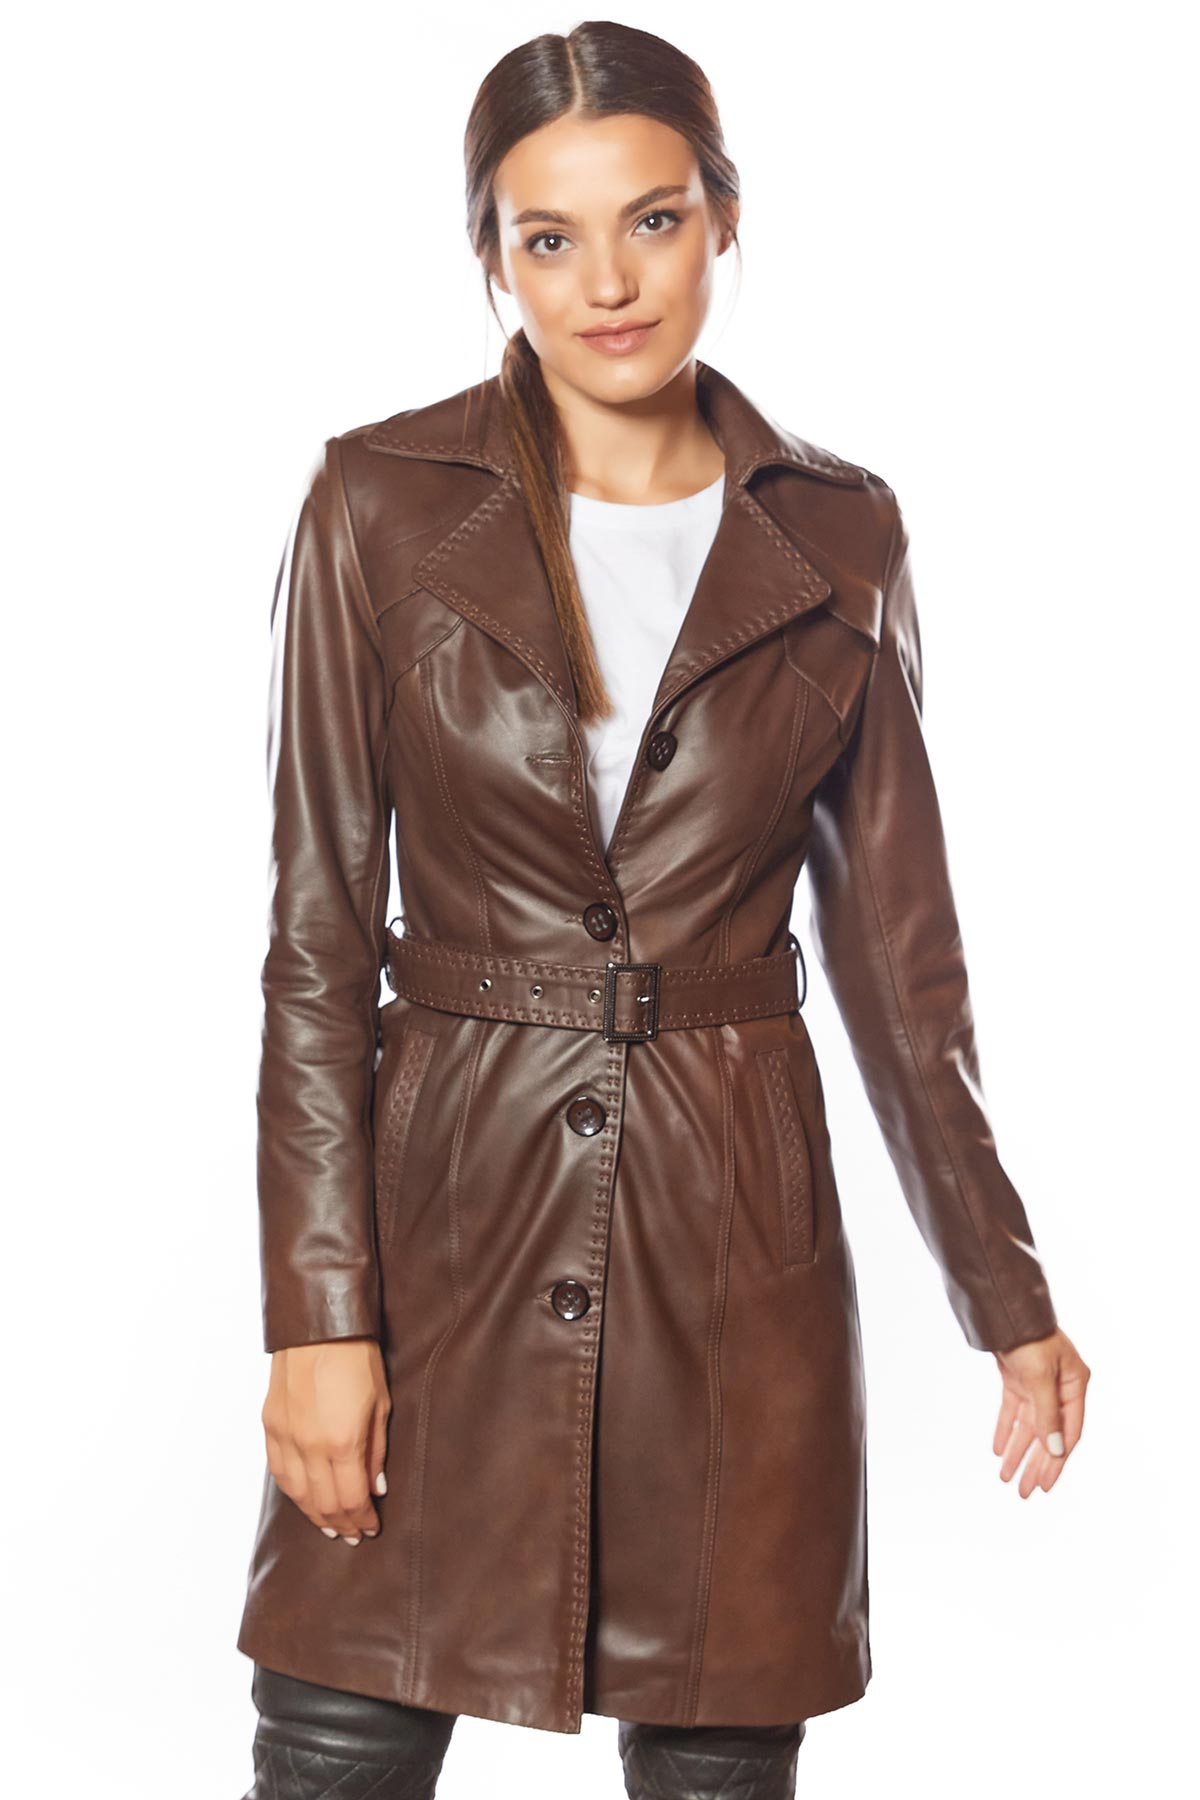 brown leather jacket female